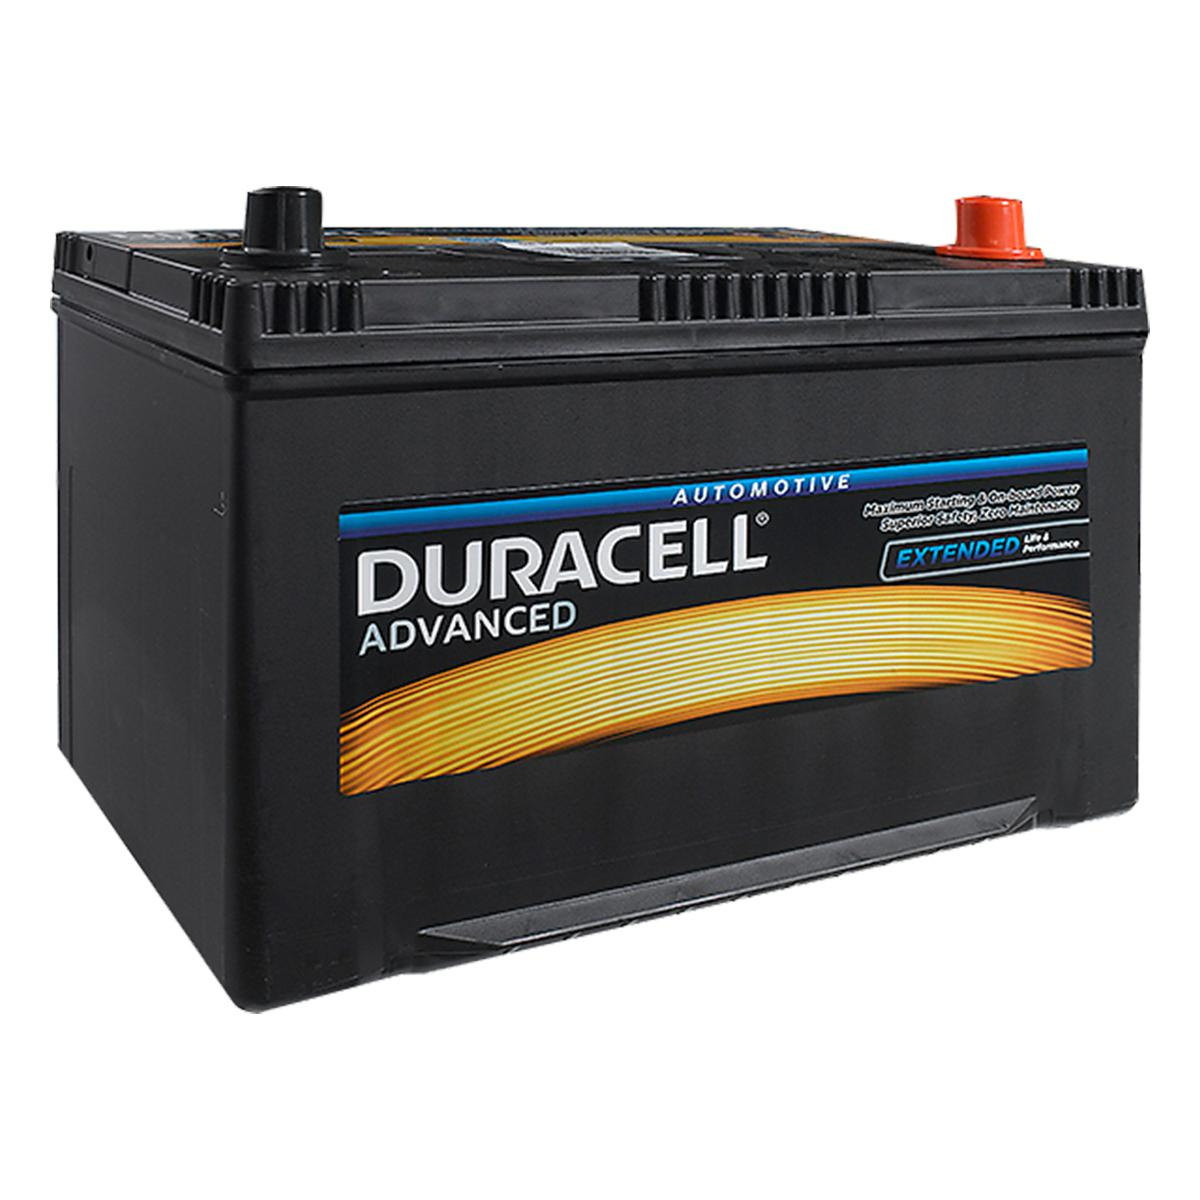 duracell 249 da95 advanced car battery www. Black Bedroom Furniture Sets. Home Design Ideas